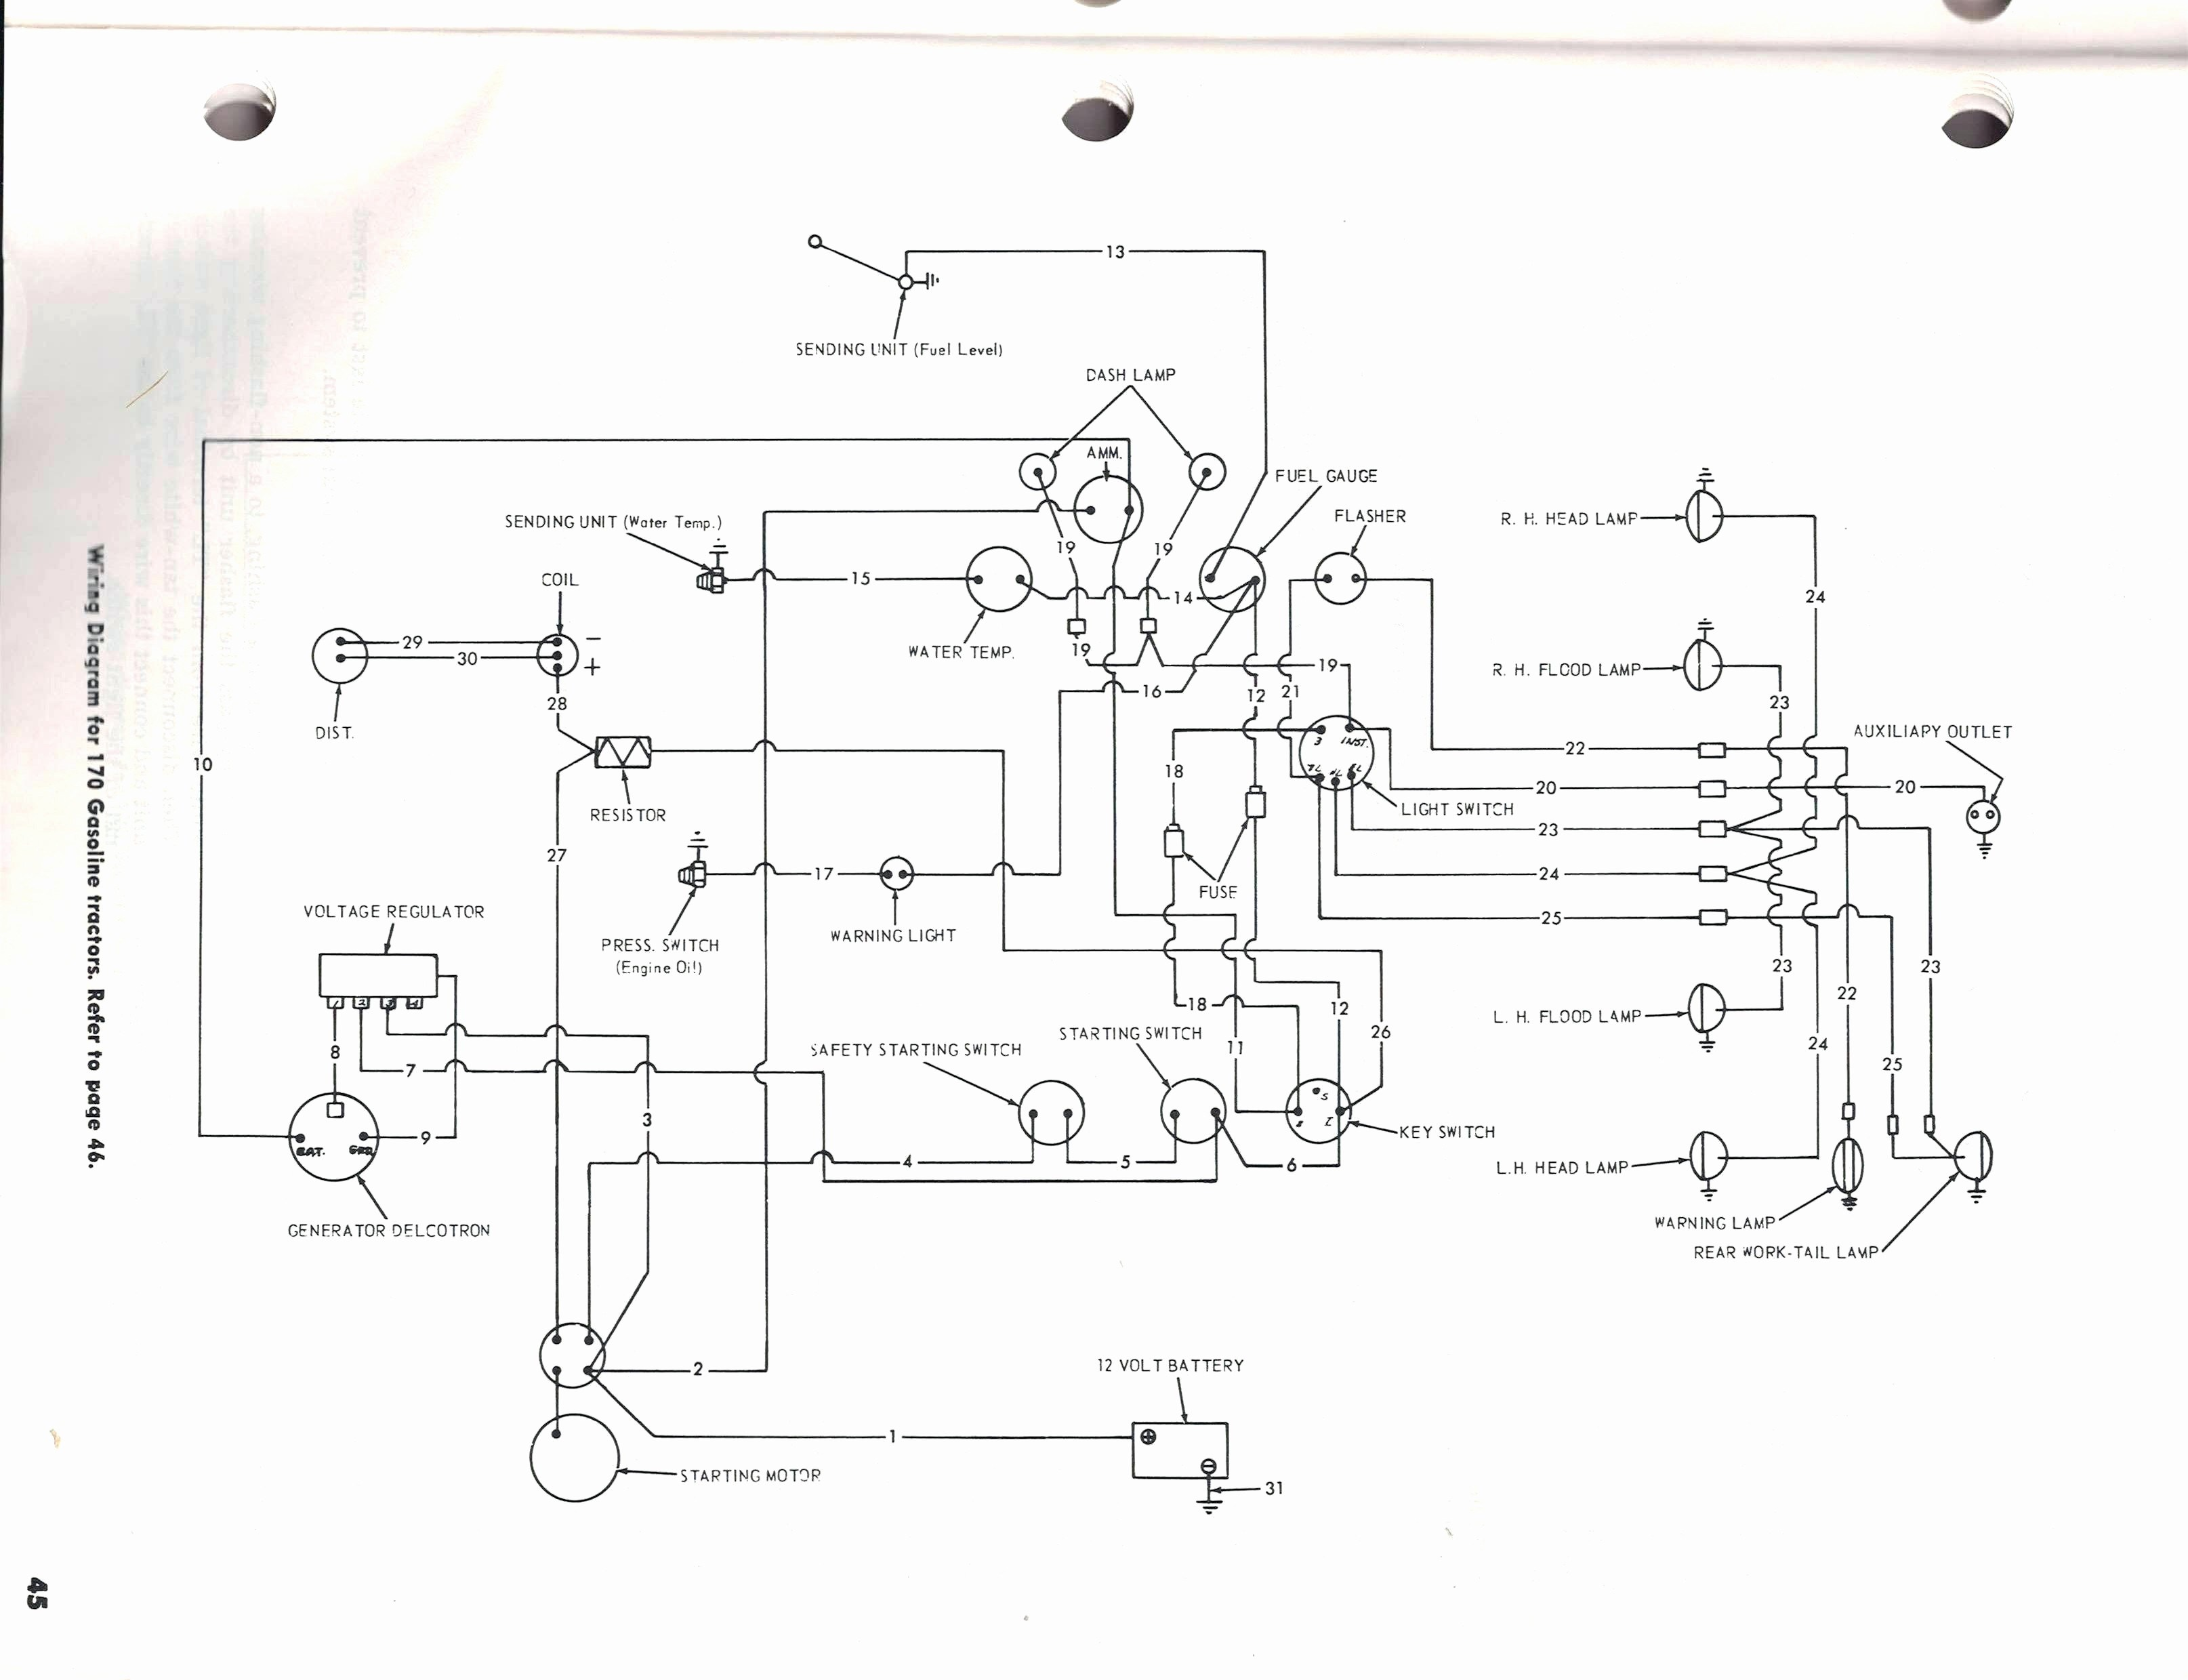 600 ford tractor starter solenoid wiring diagram hr 5117  ford workmaster 601 tractor wiring diagram wiring diagram  ford workmaster 601 tractor wiring